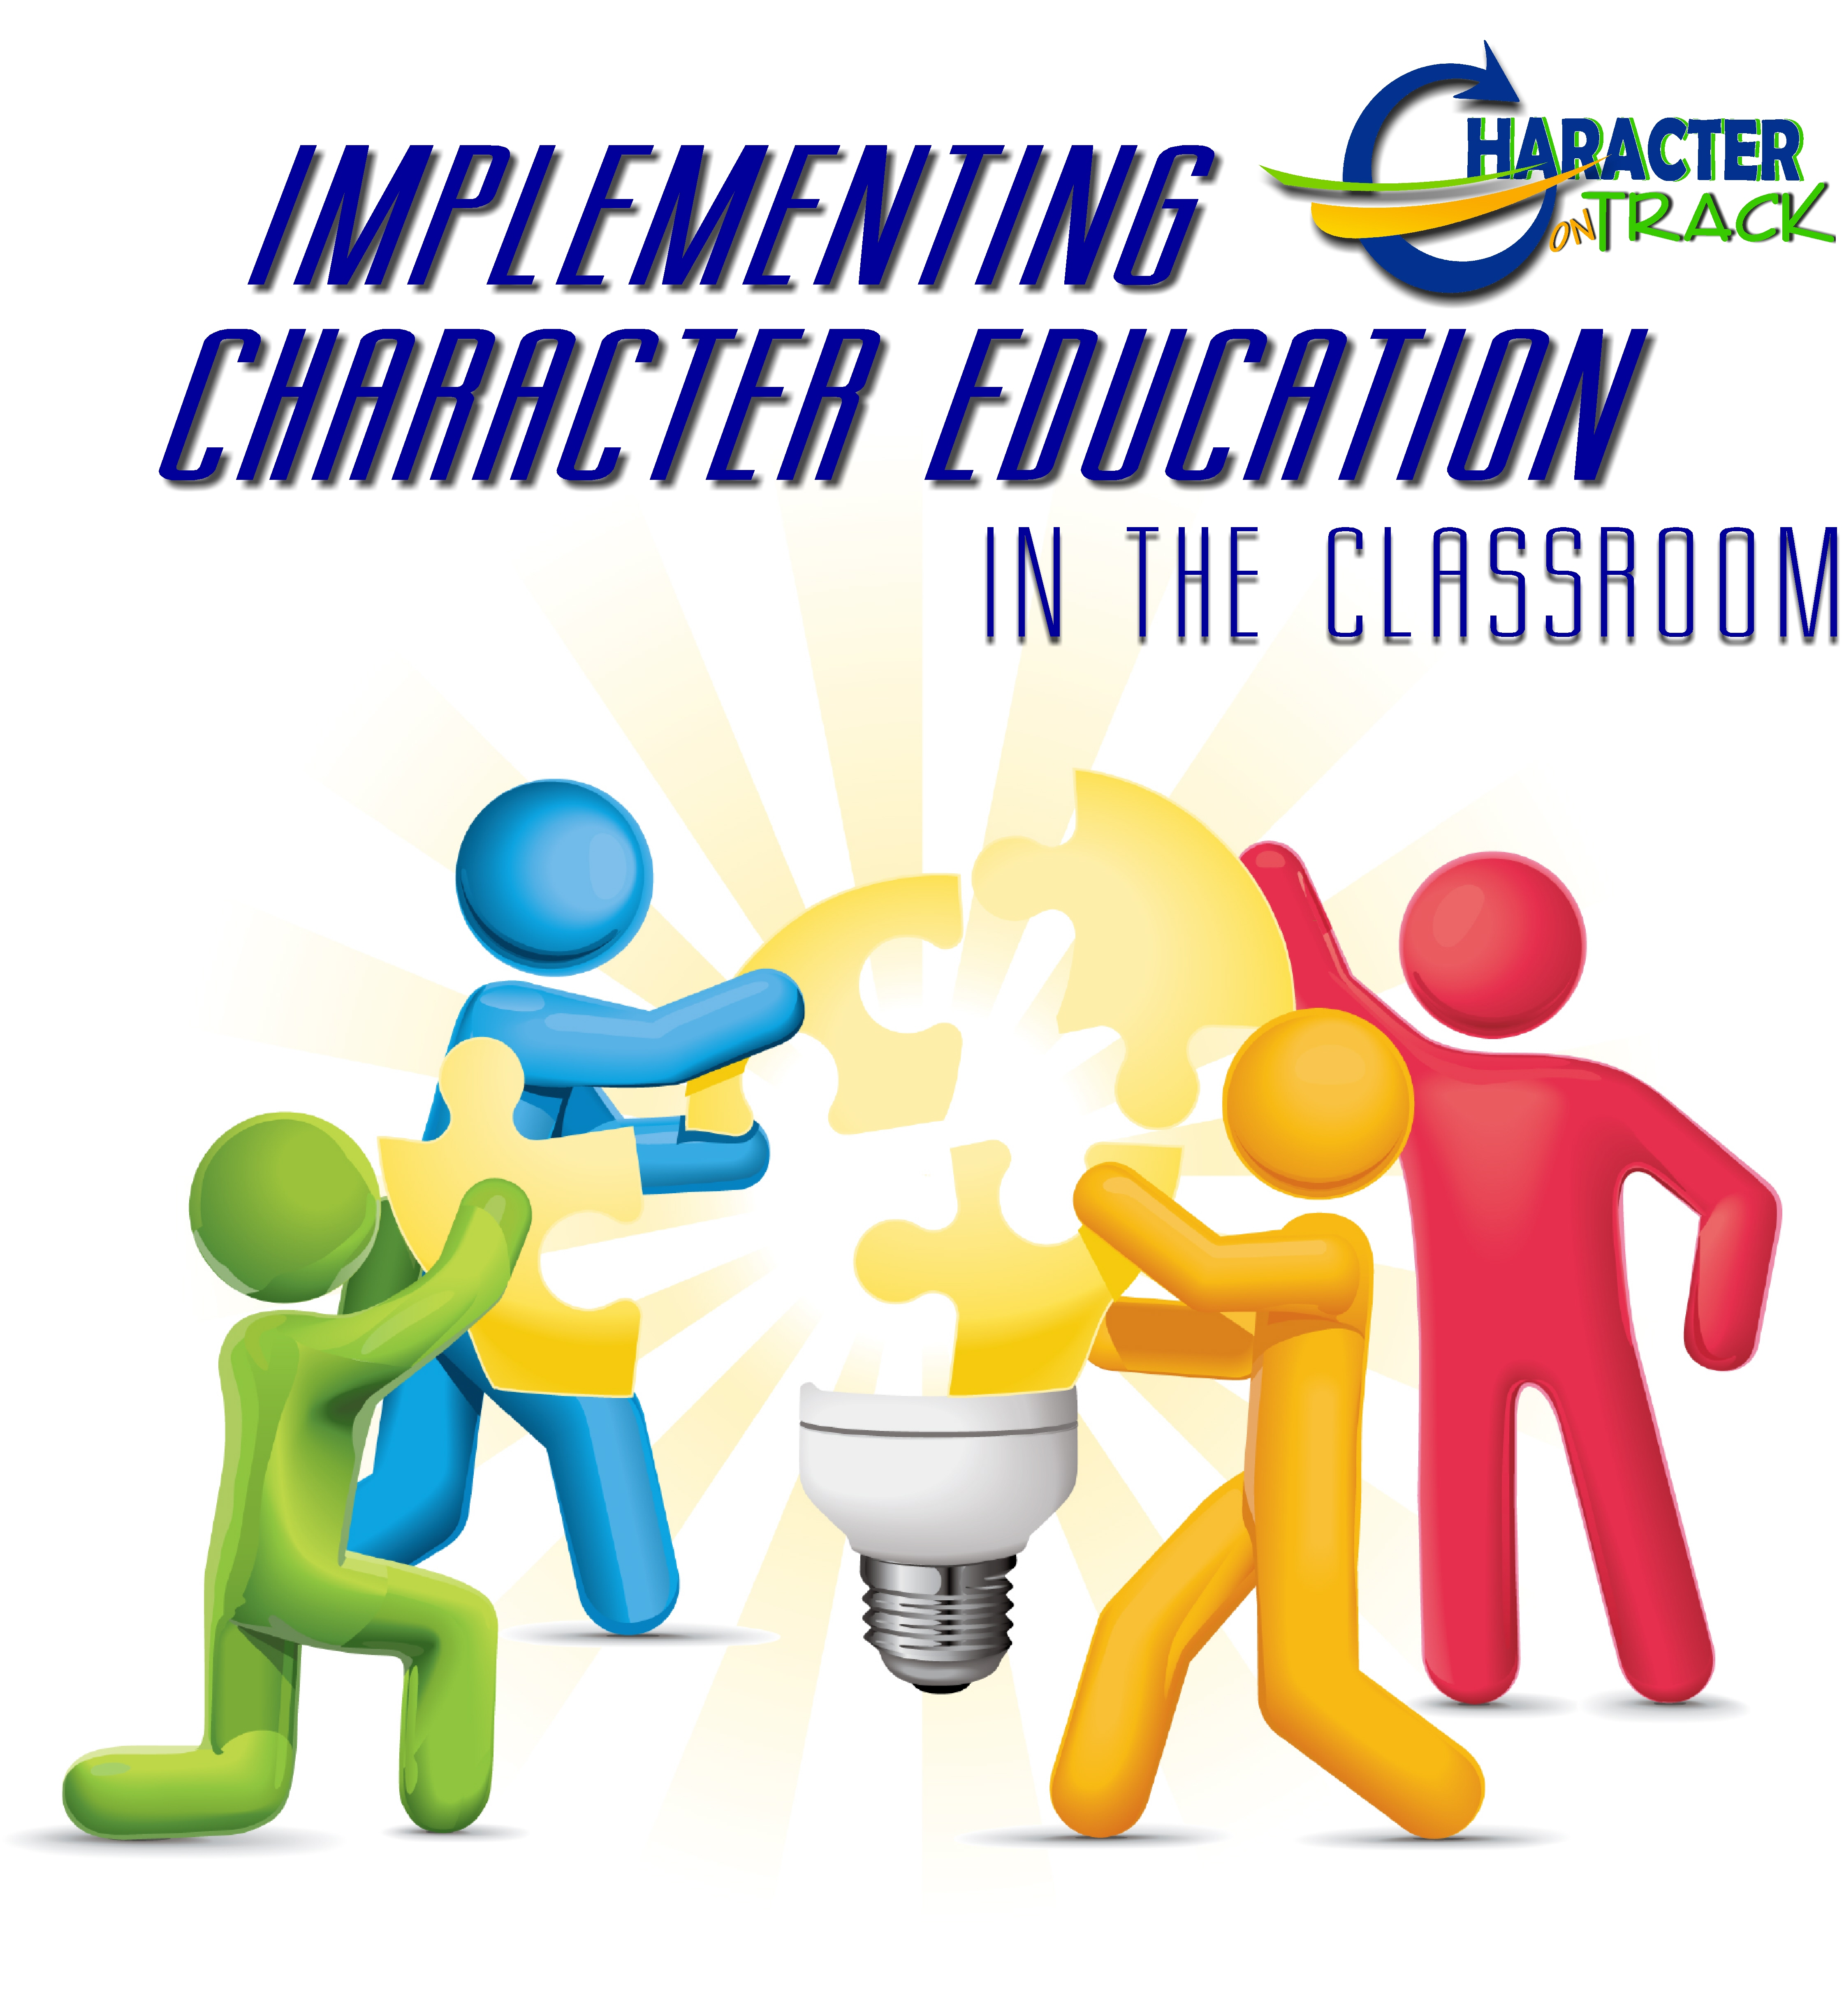 Implementing Character